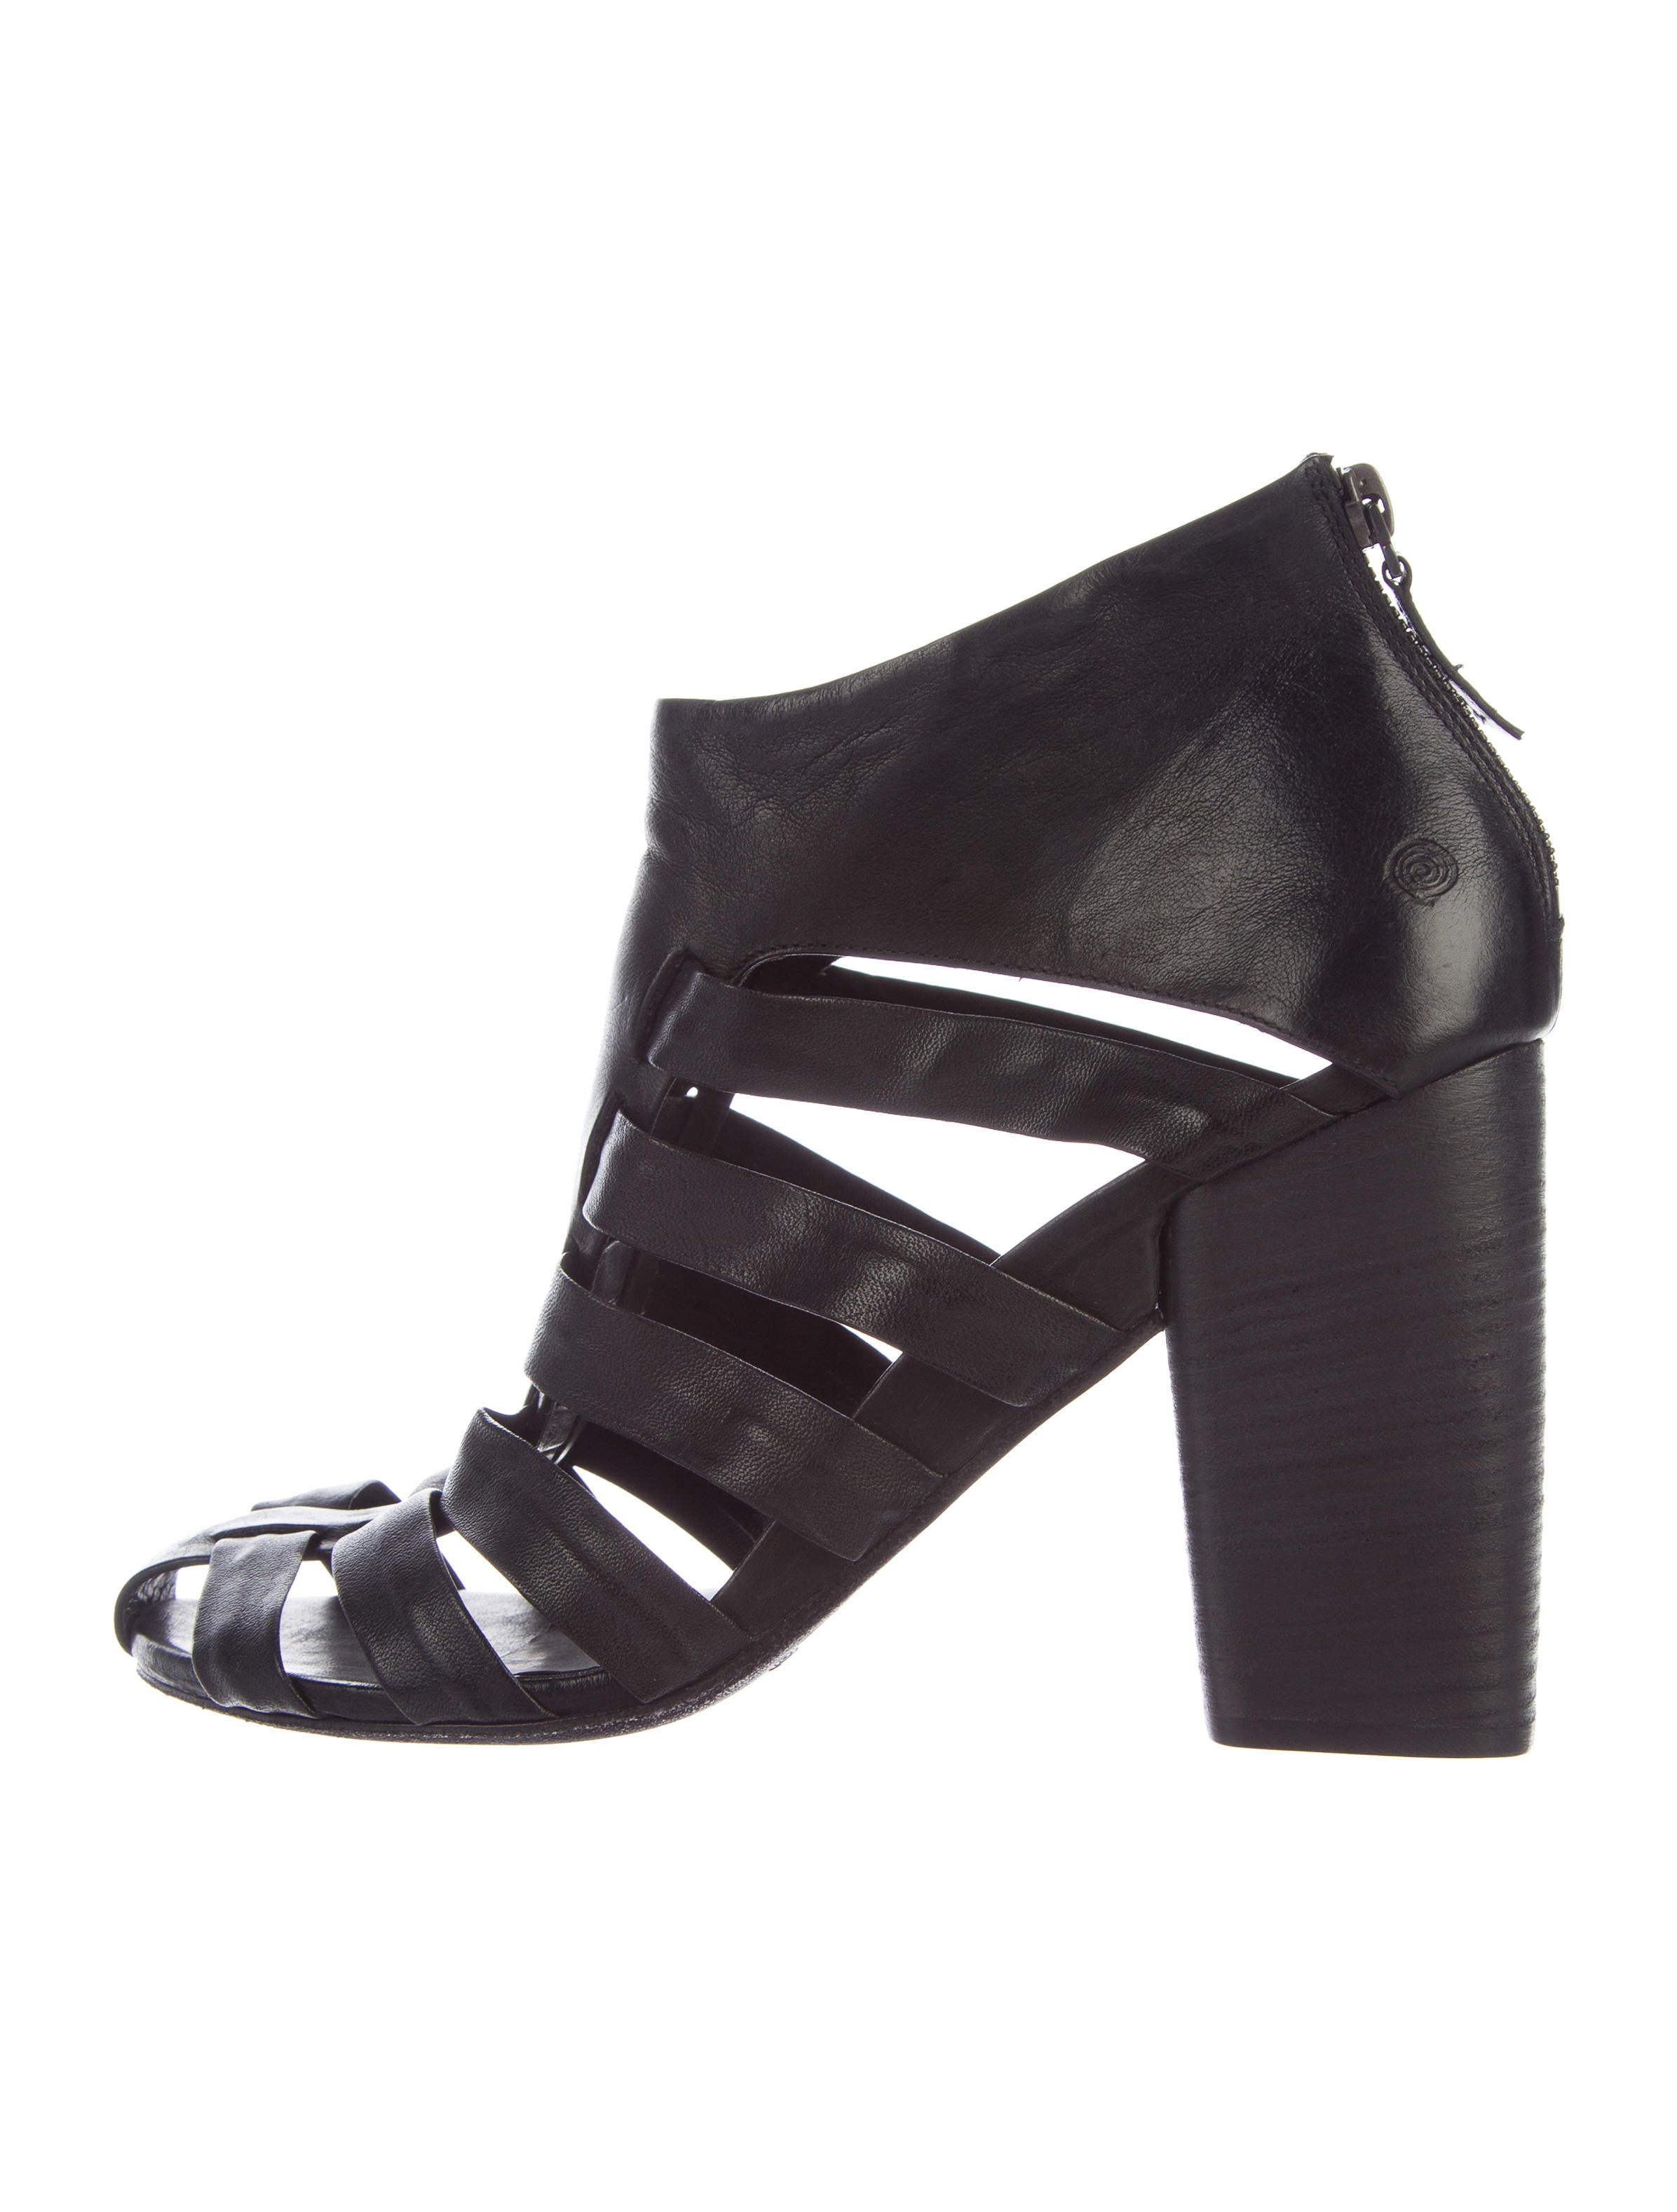 clearance outlet store Marsèll Leather Cage Sandals sast cheap online cheap sale with mastercard buy cheap enjoy eH0HOB